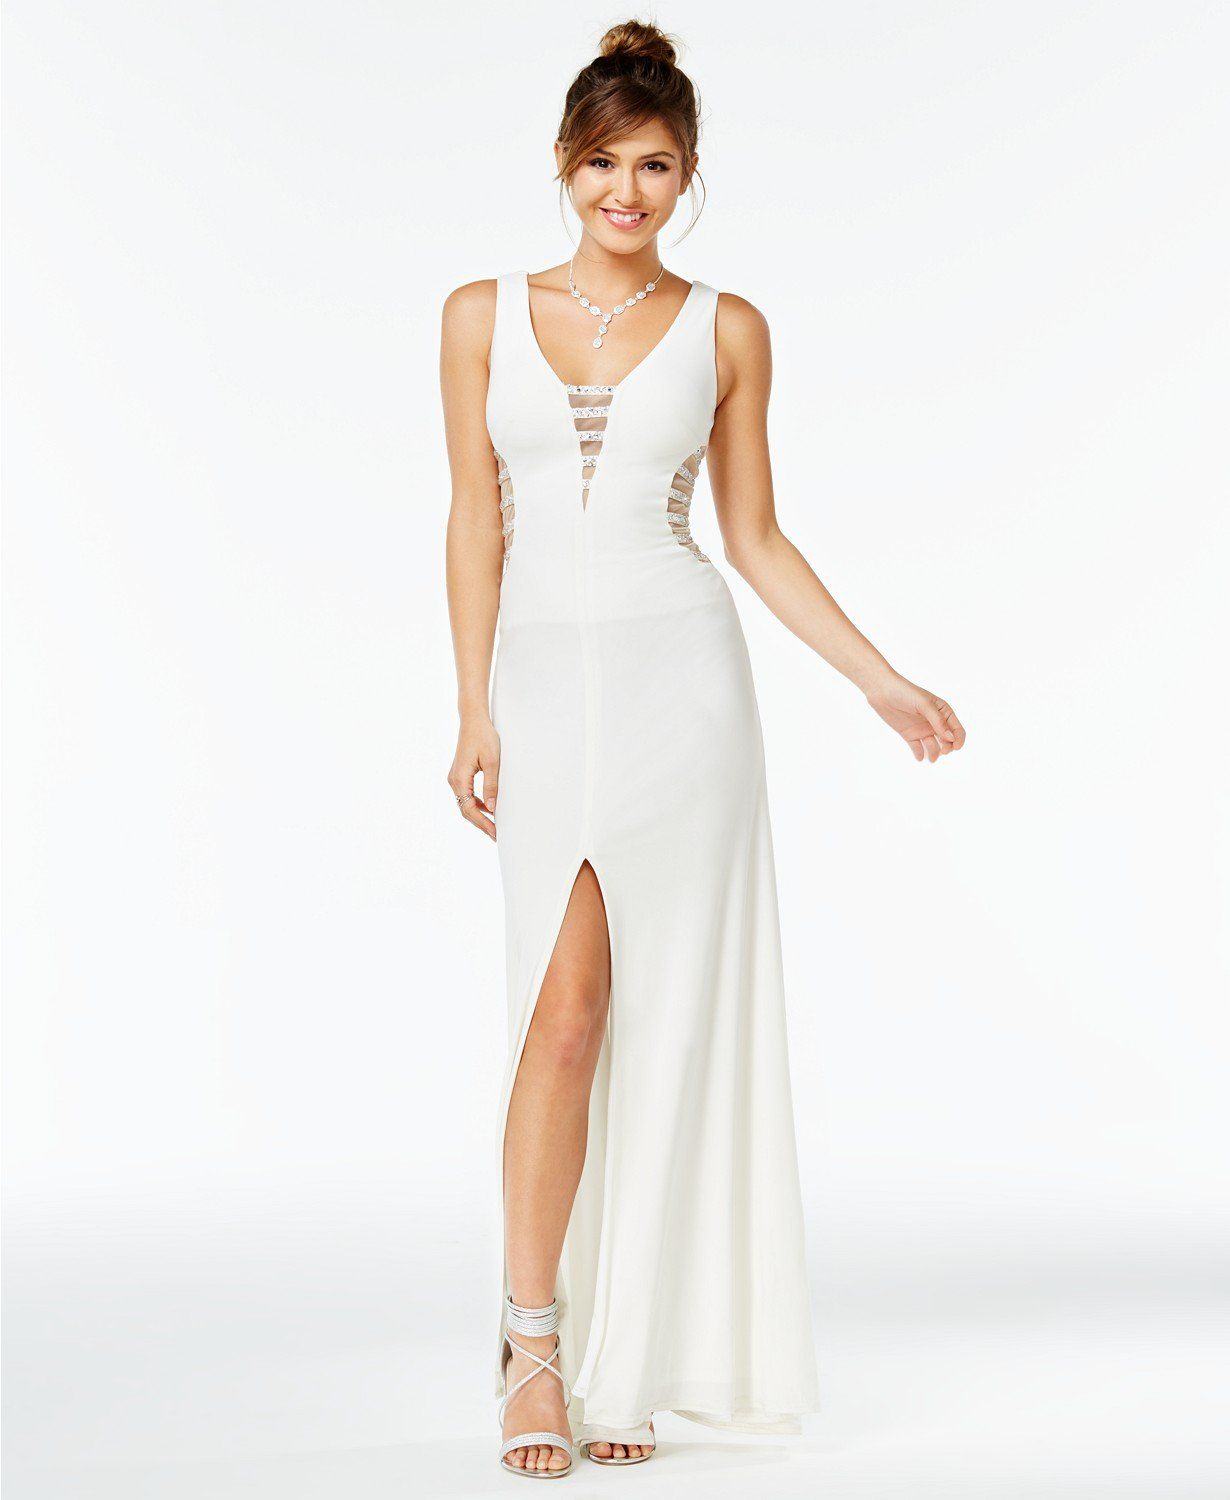 Say yes to the prom embellished illusion stripe gown created for